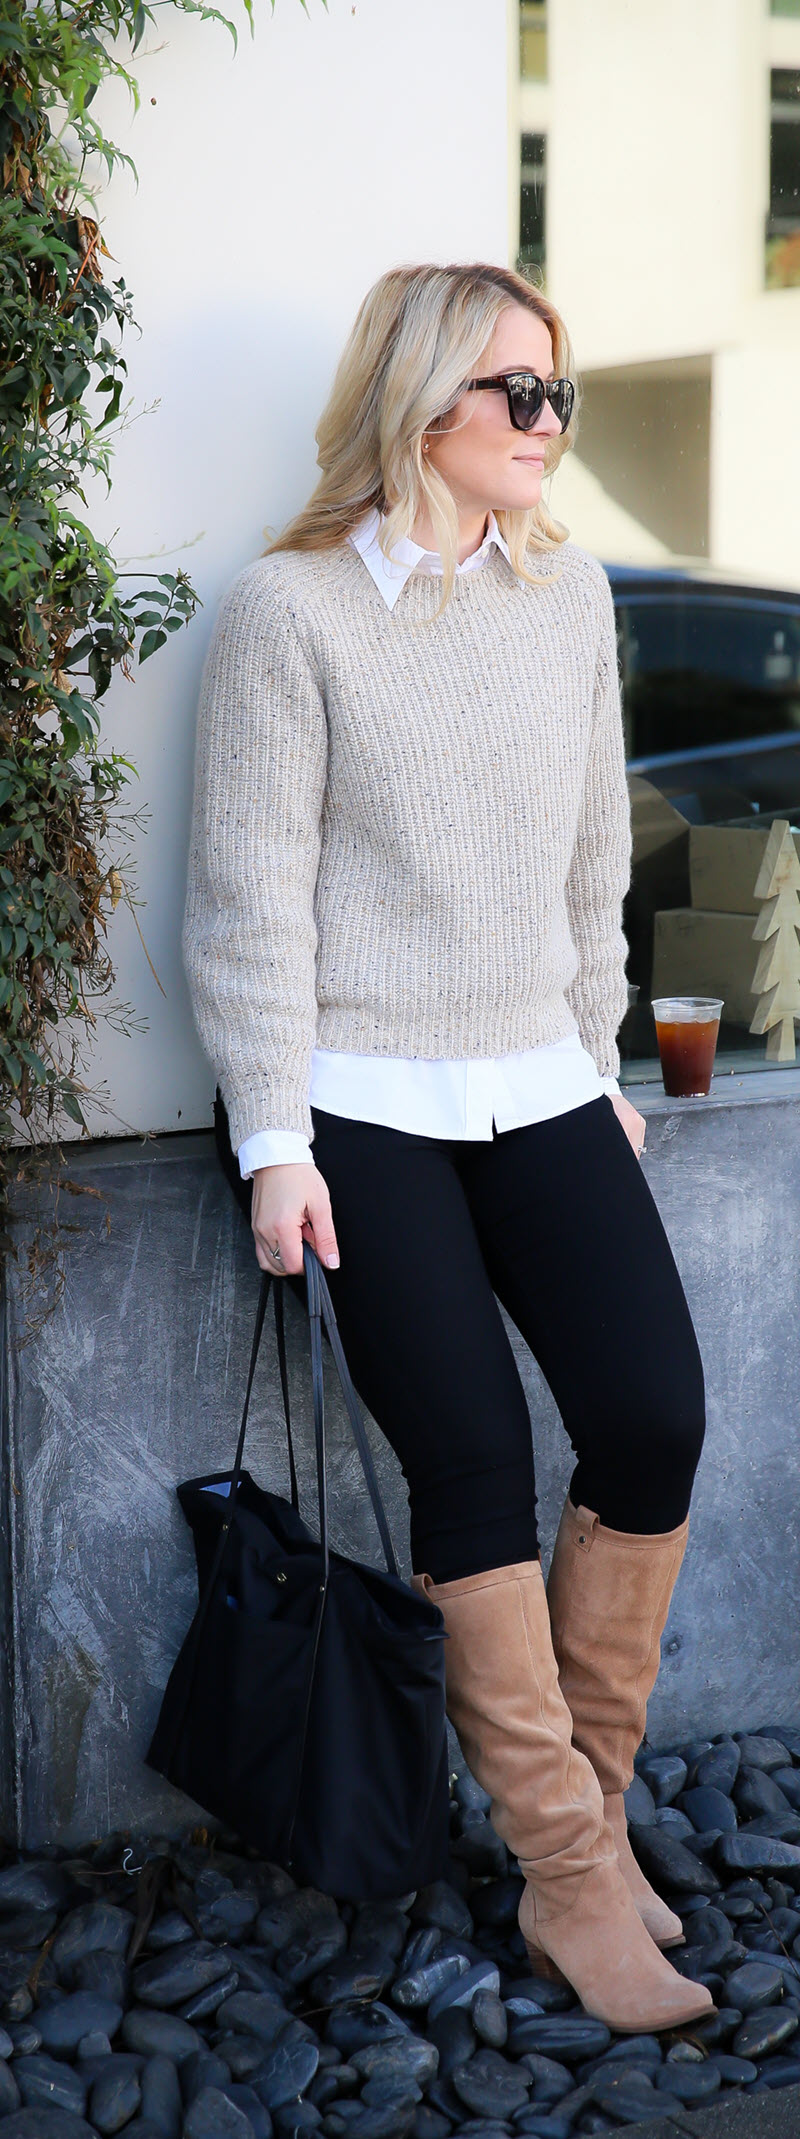 How to Layer Cashmere + Wool Sweaters #fashion #winterstyle #fashionstyle #style #fashionblog #fashionblogger #styleblog #womensfashion #womenover30 #abbotkinney #losangeles